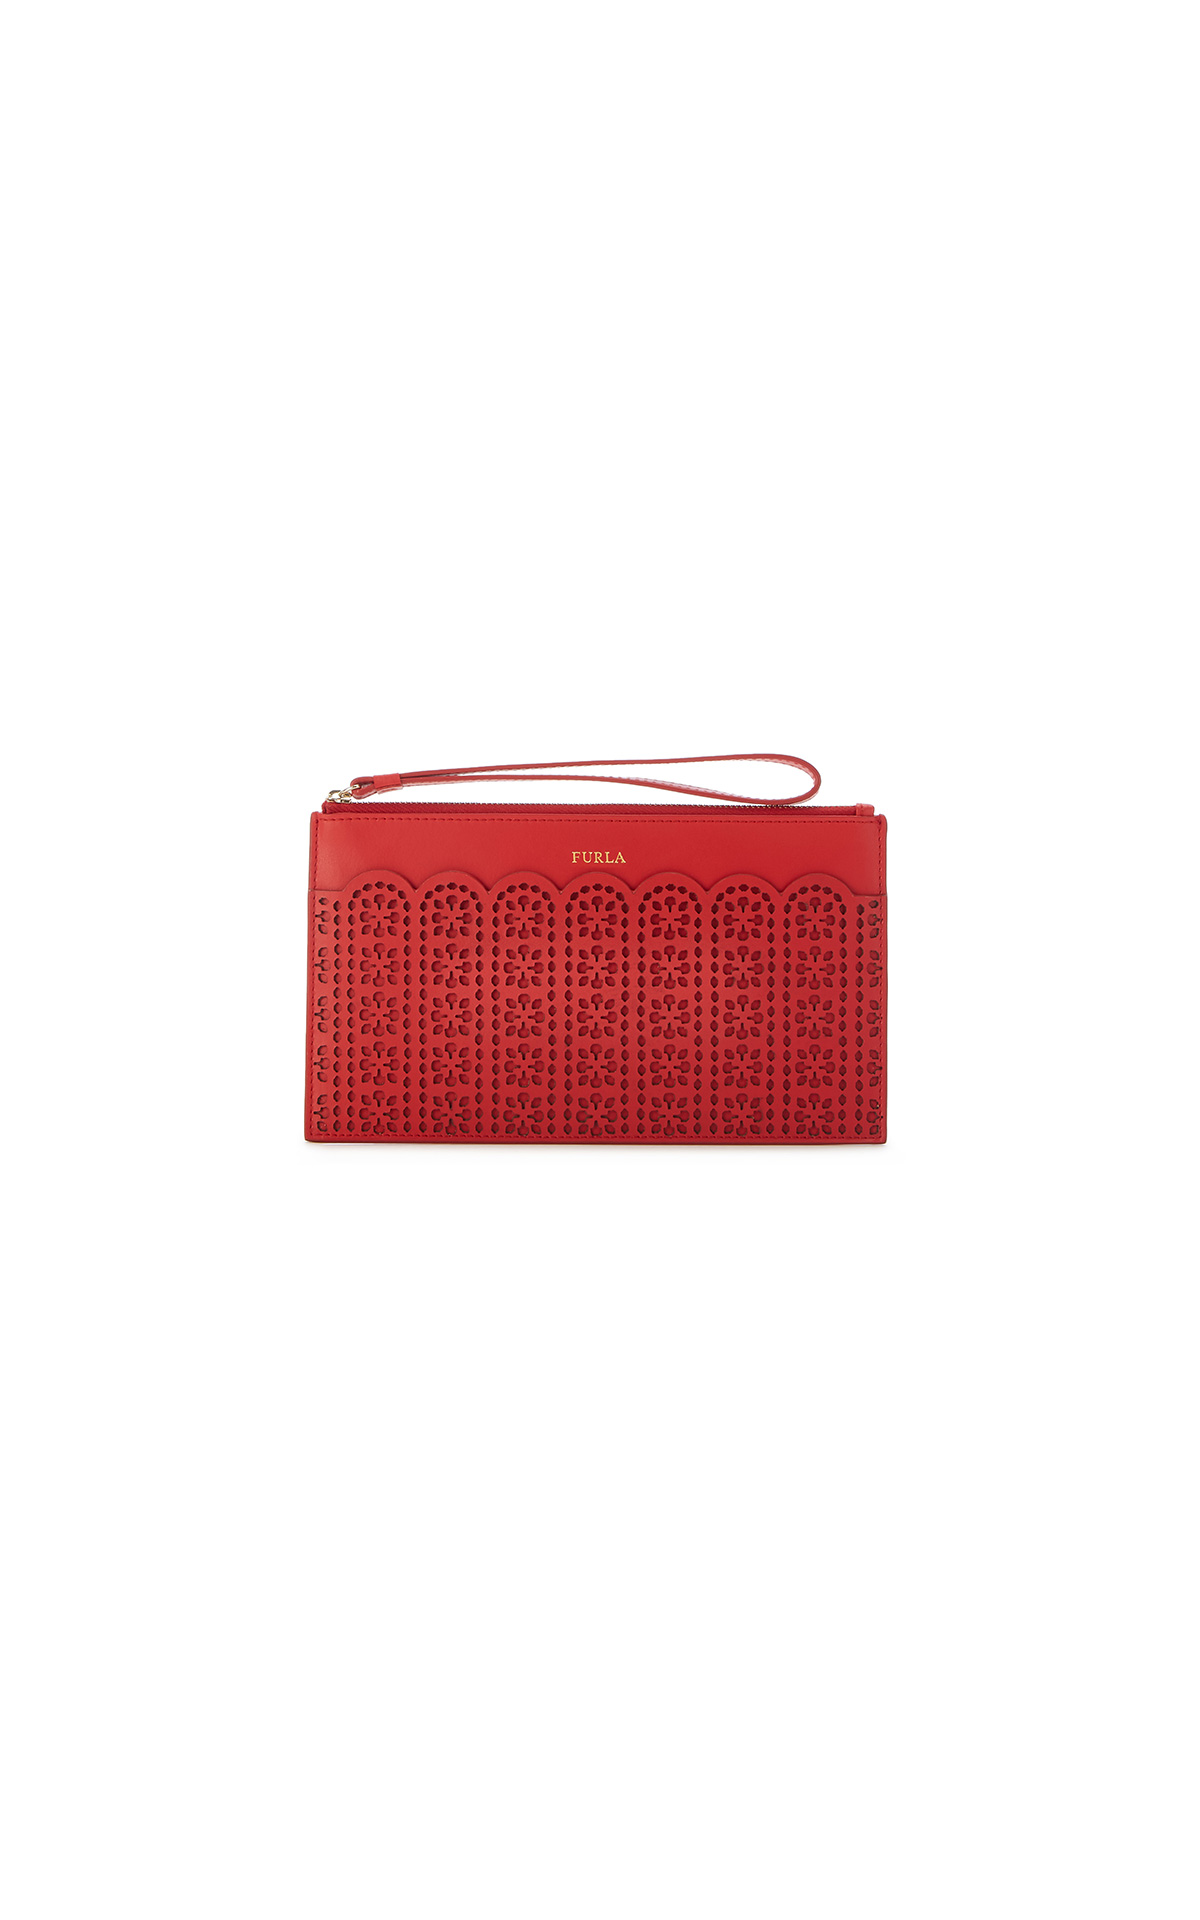 Furla Italia XL envelope in red at The Bicester Village Shopping Collection